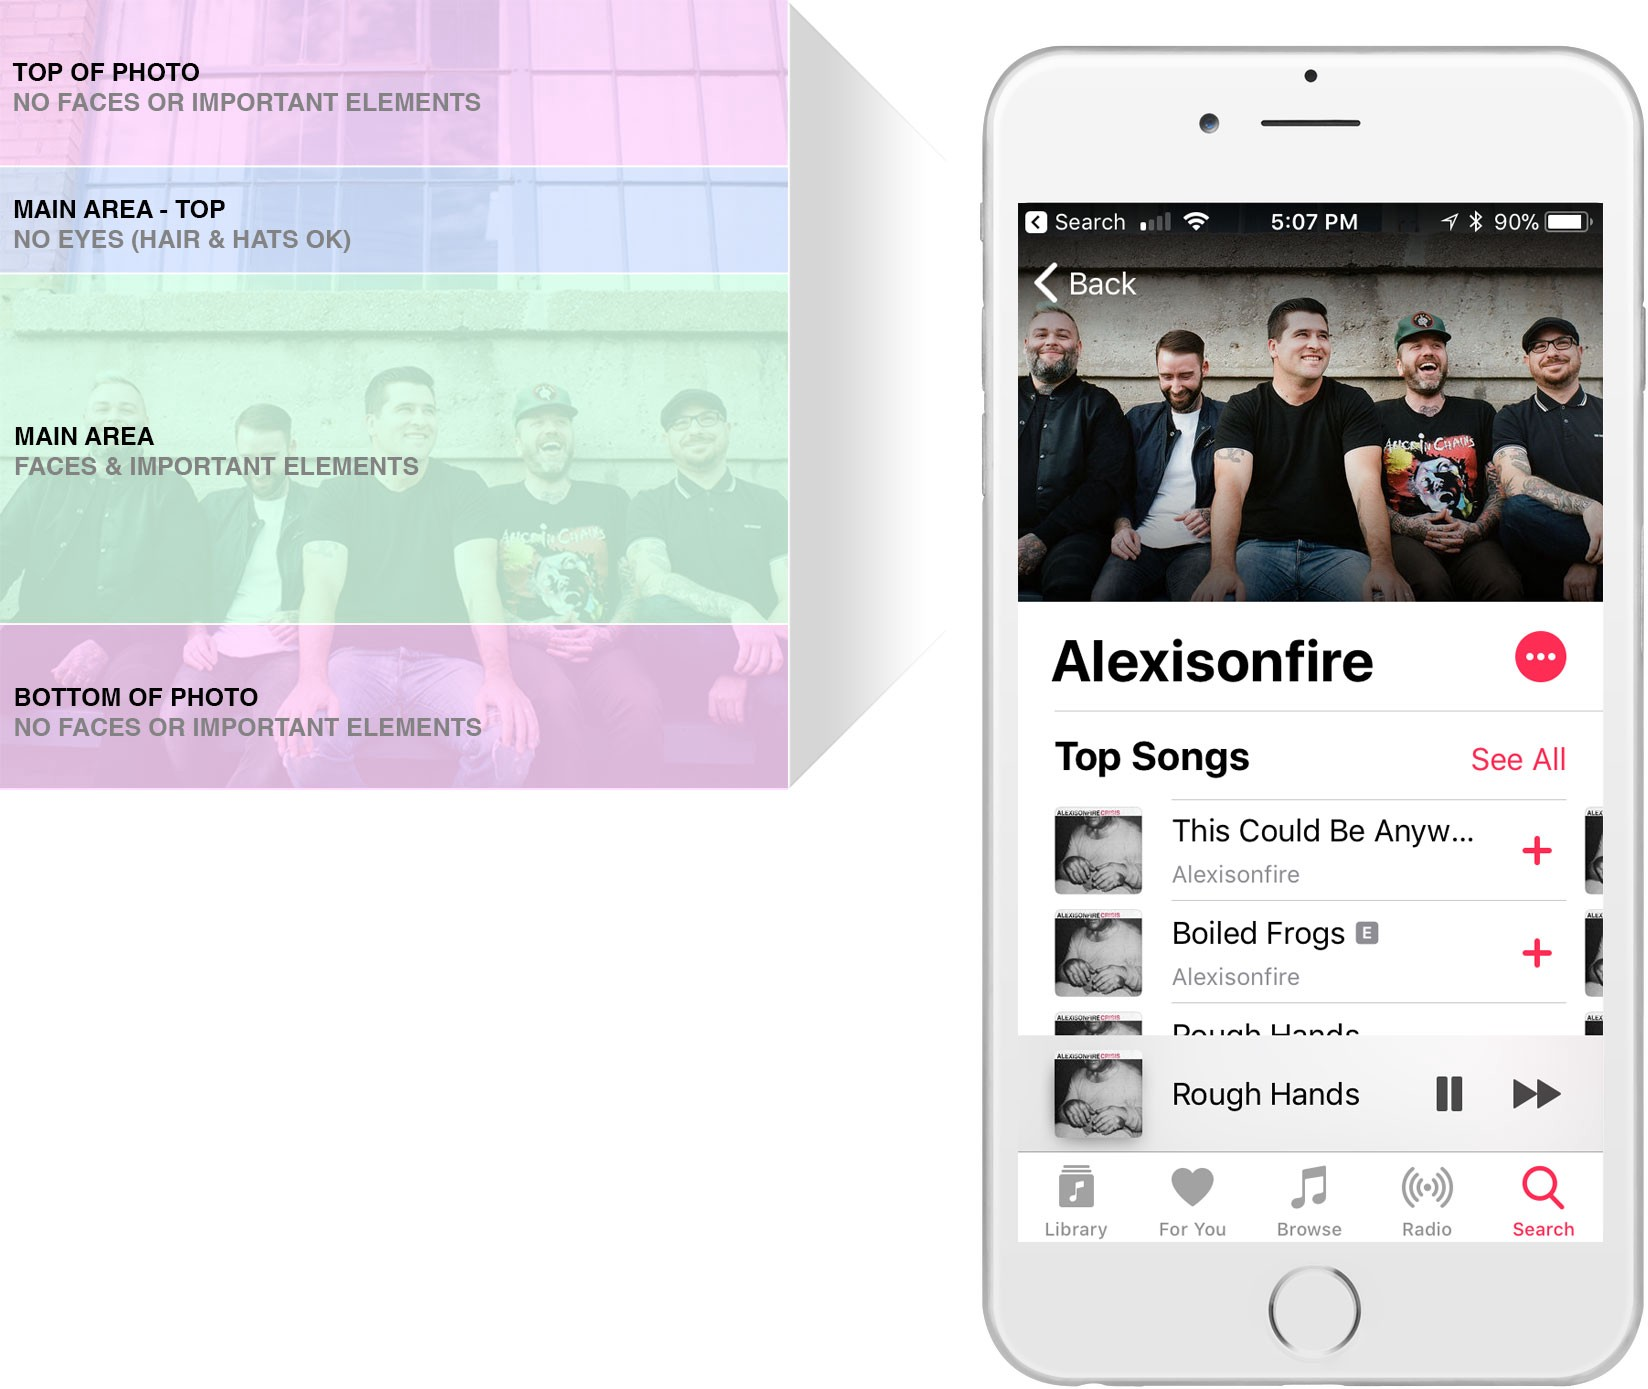 DistroKid Artists Can Now Instantly Add An Apple Artist Photo